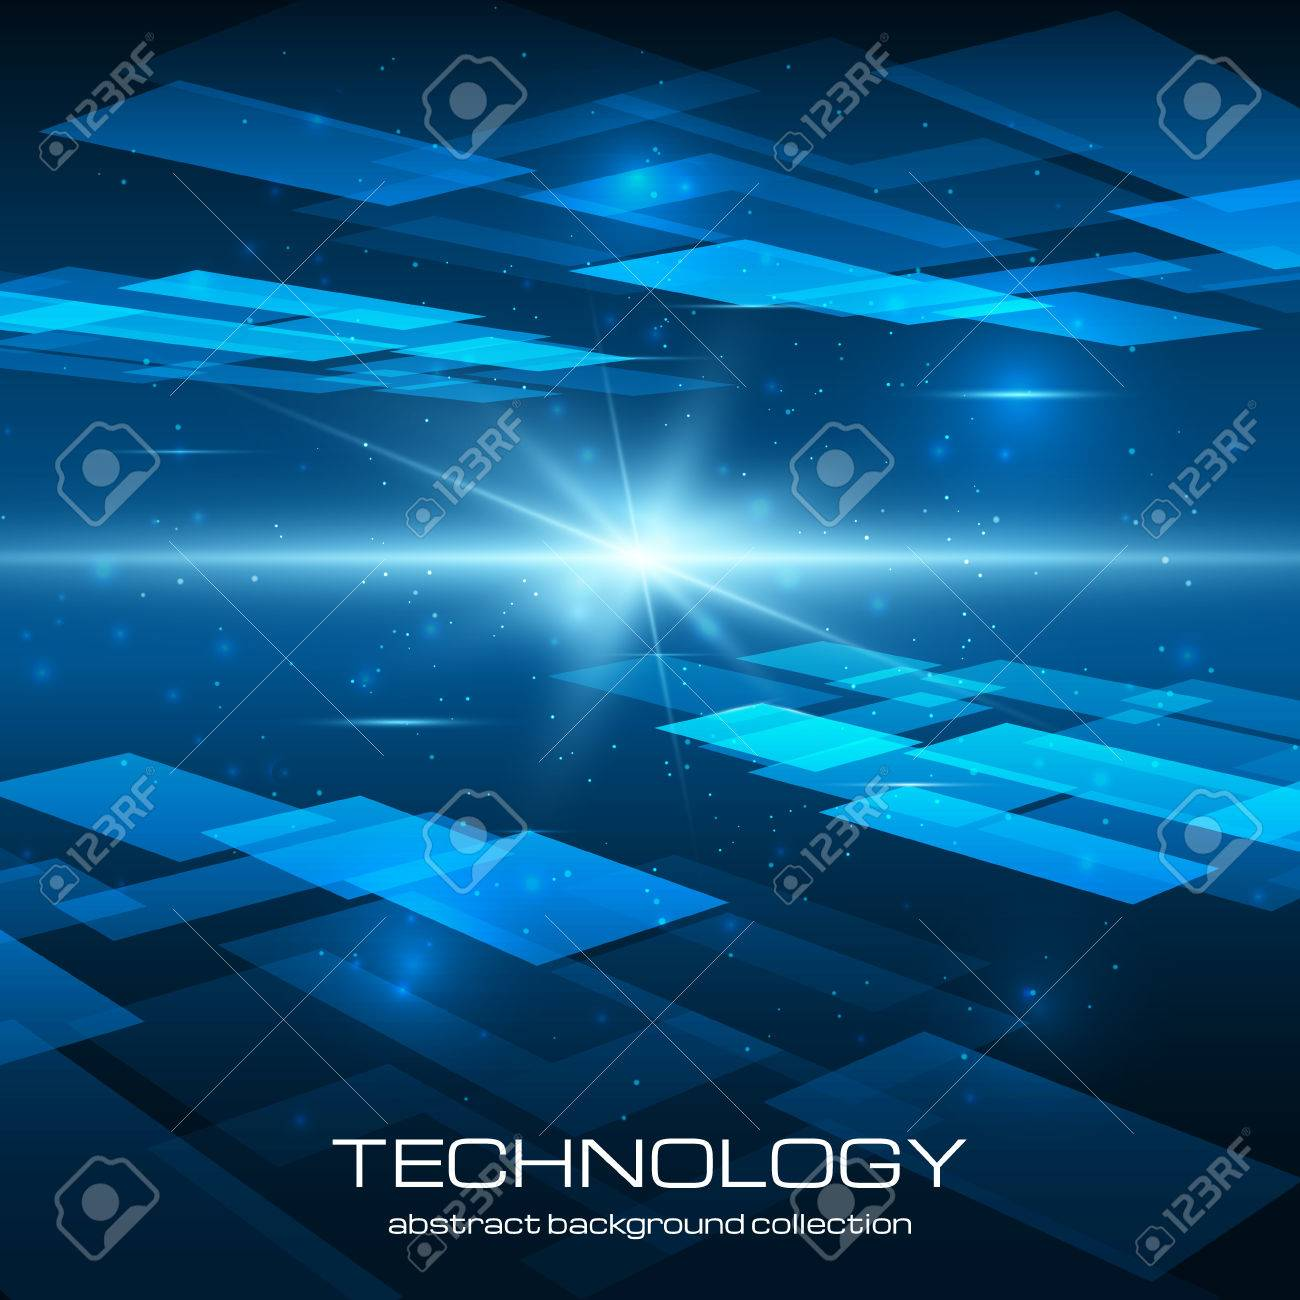 Abstract yellow technology background with bright flare. Vector illustration. Stock Vector - 25426132